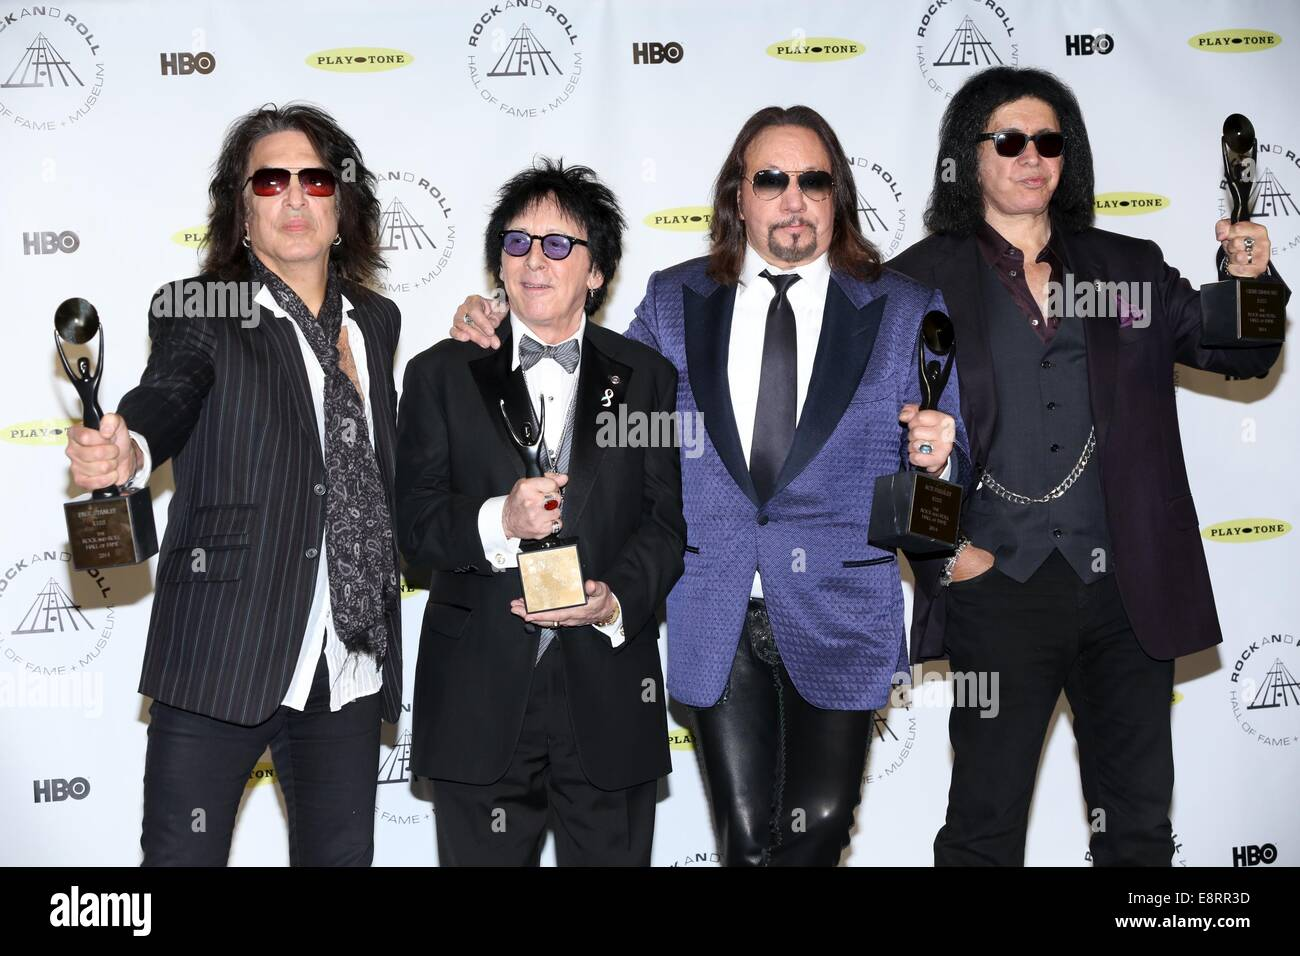 29th annual rock and roll hall of fame induction ceremony at barclays center of brooklyn featuring paul stanley peter criss ace frehley and gene simmons